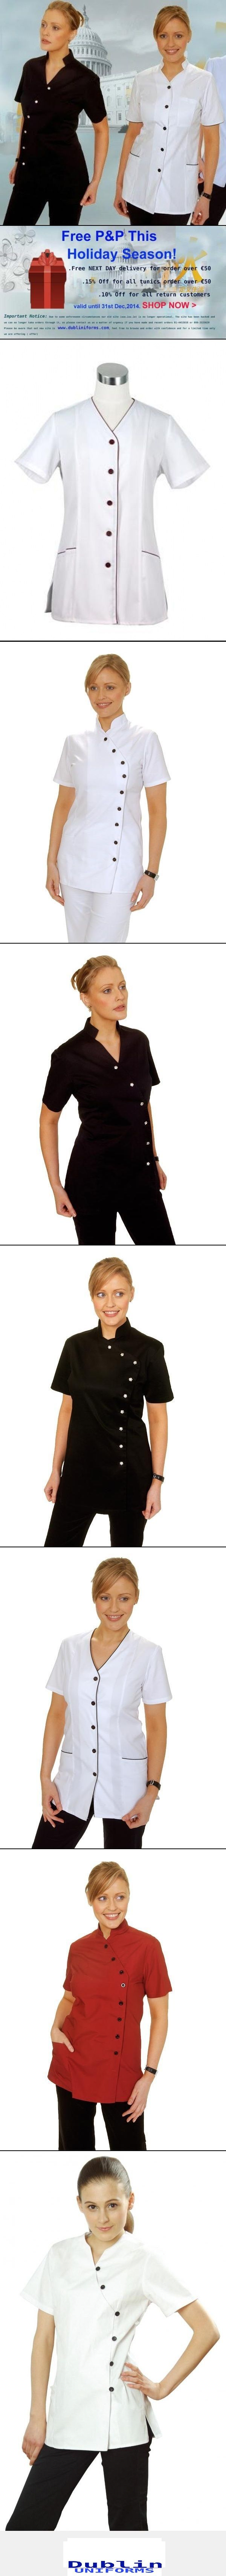 #HealthcareUniforms You don't miss the chance; we offer a good deal are Healthcare Uniforms specially from Dublin Local residential, so take the benefits on cheap price only at here - http://www.dublinuniforms.com/categories/healthcare-uniforms.html